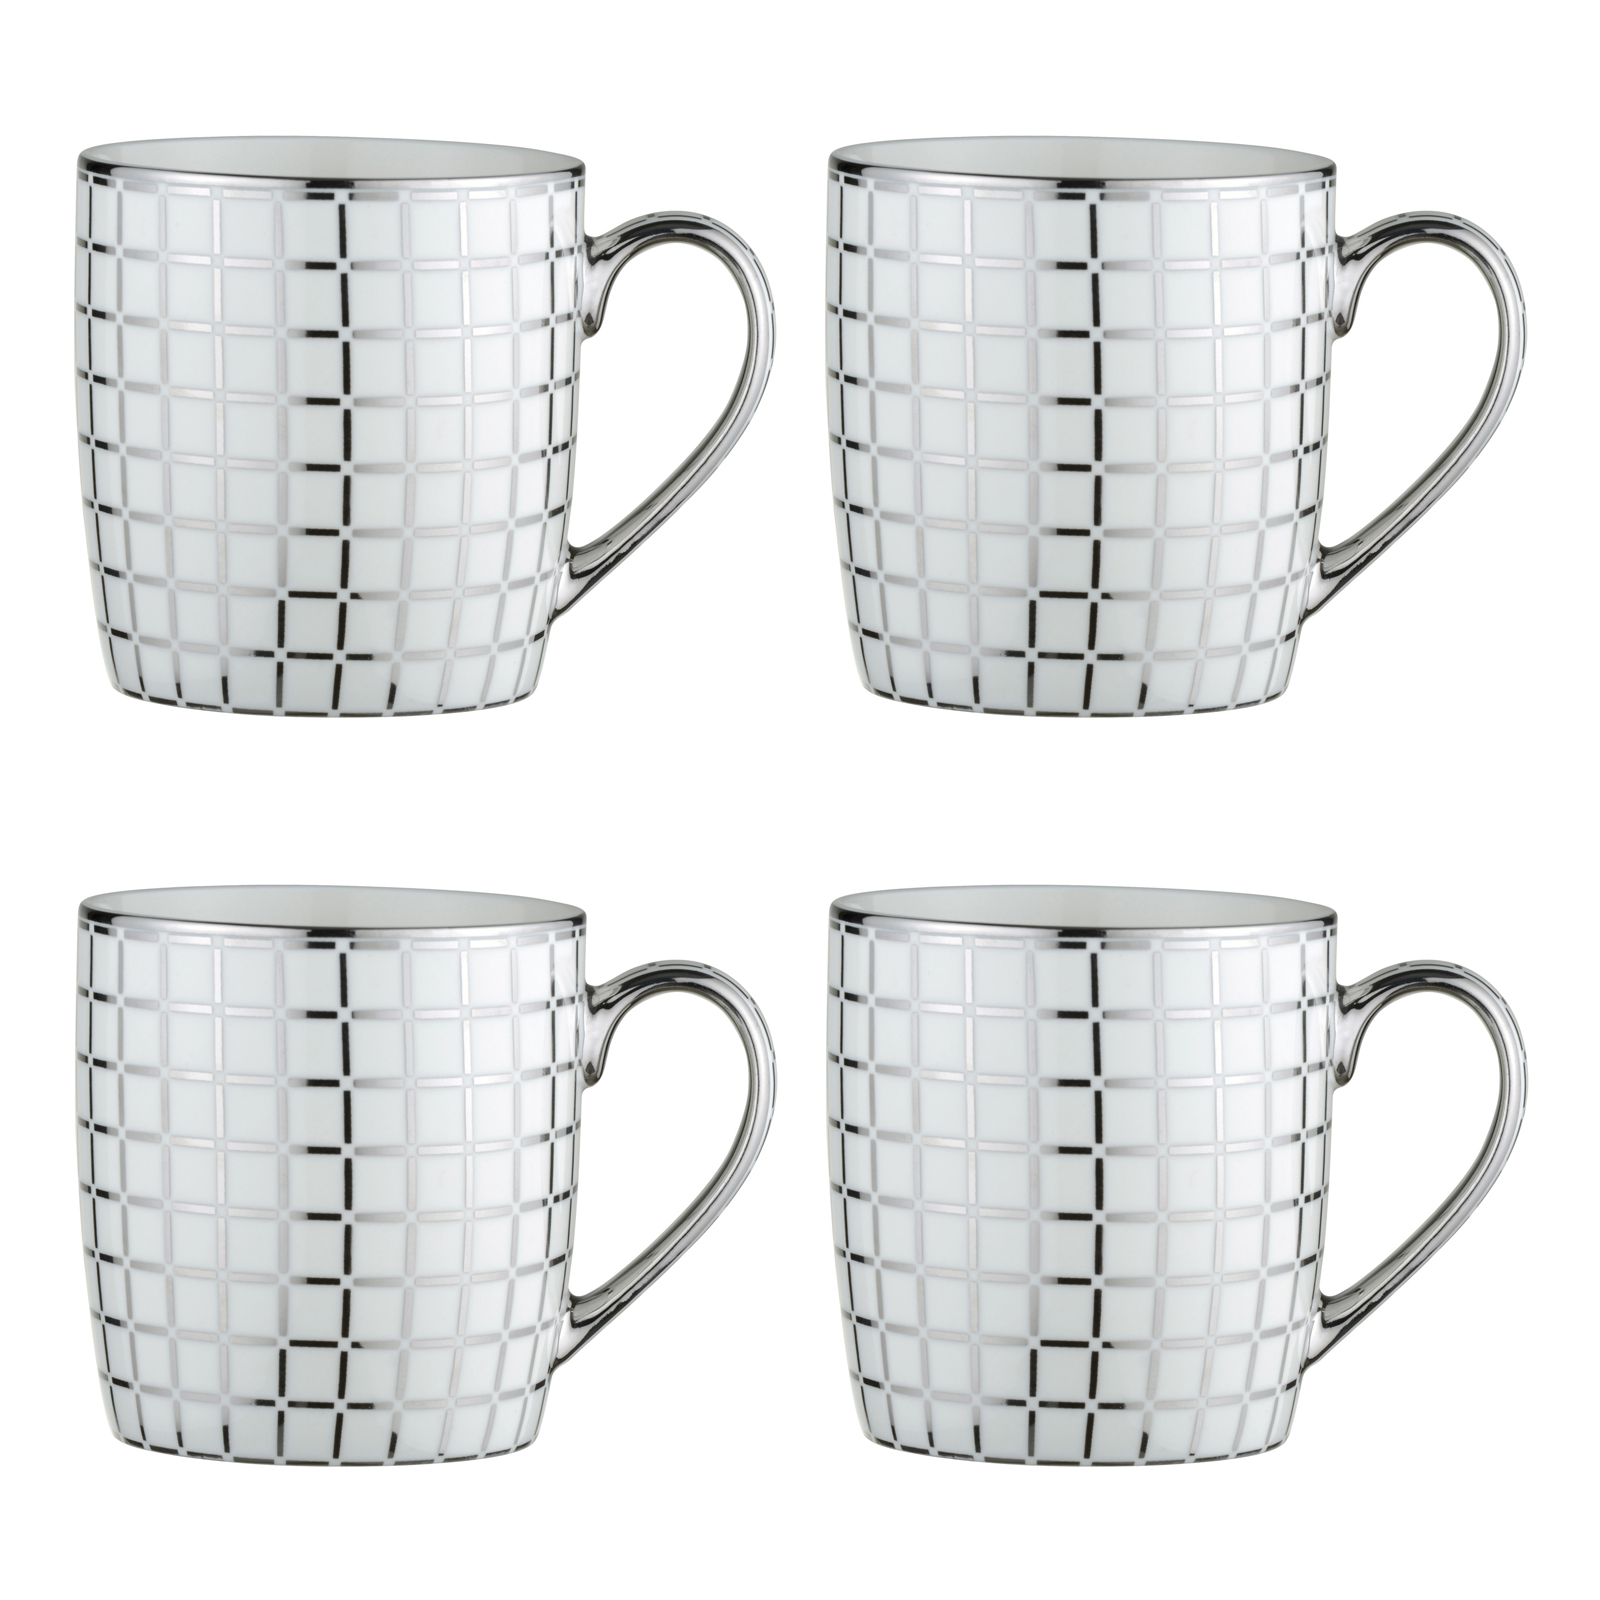 electroplated lattice mugs